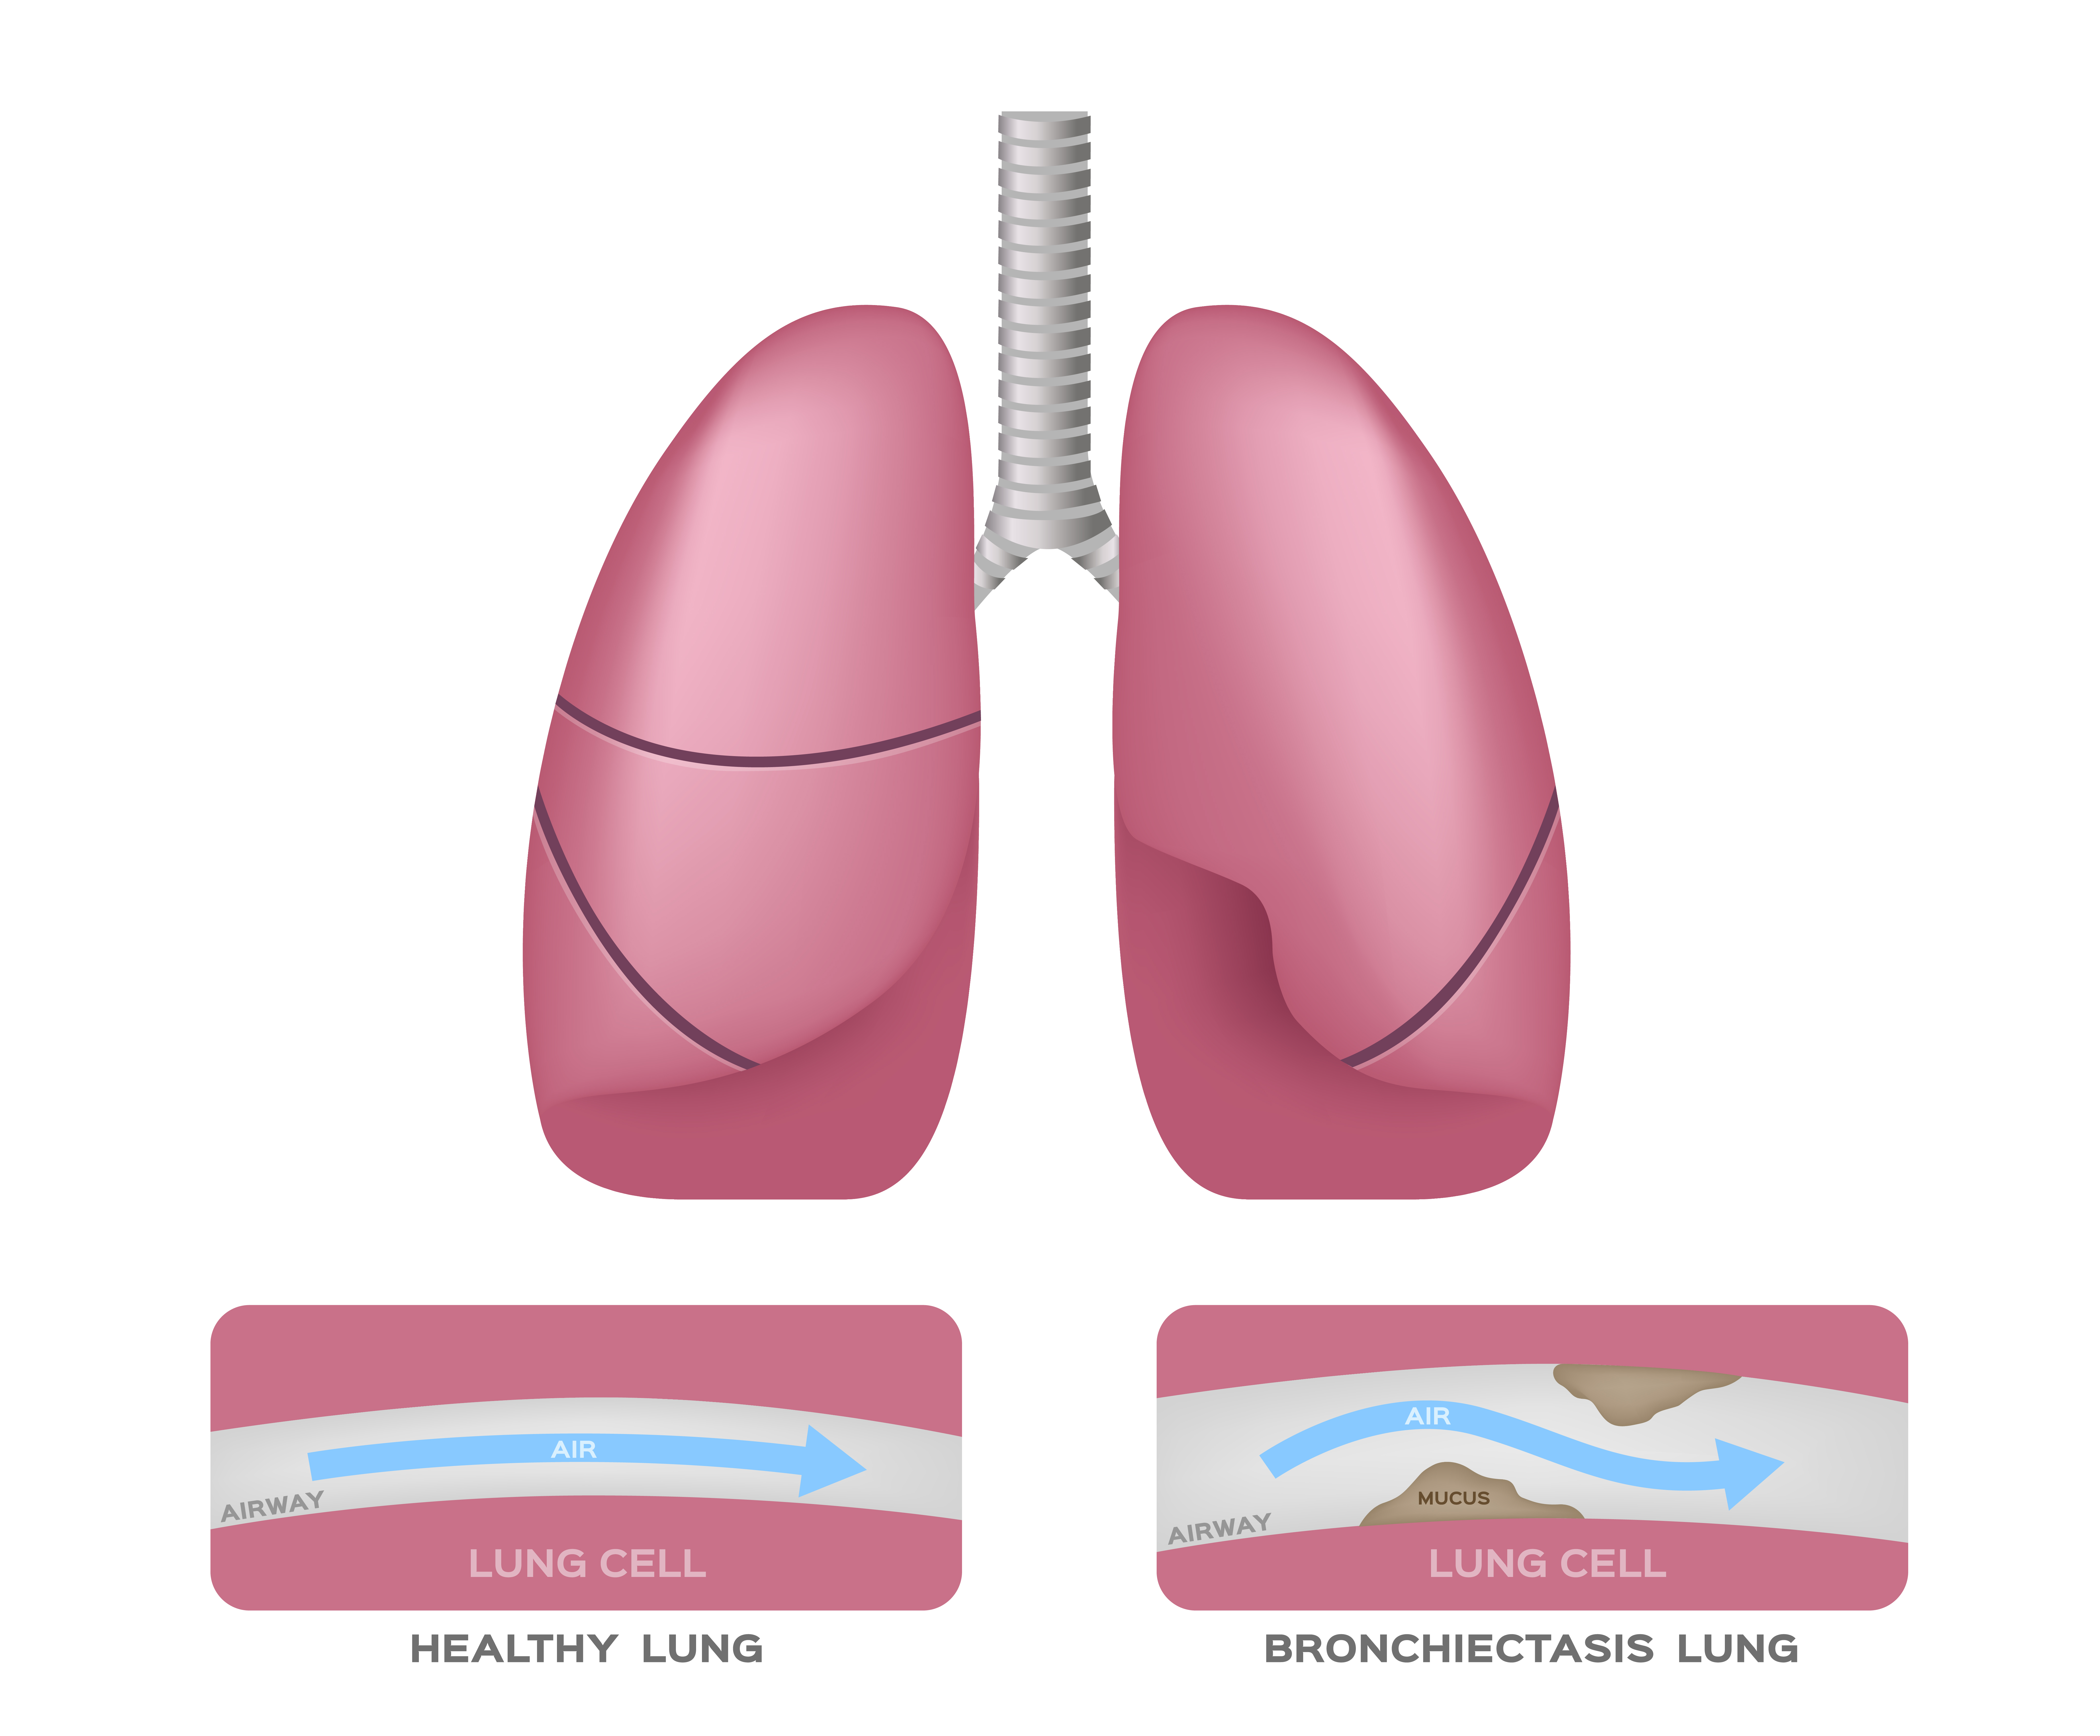 Bronchiectasis in the lungs